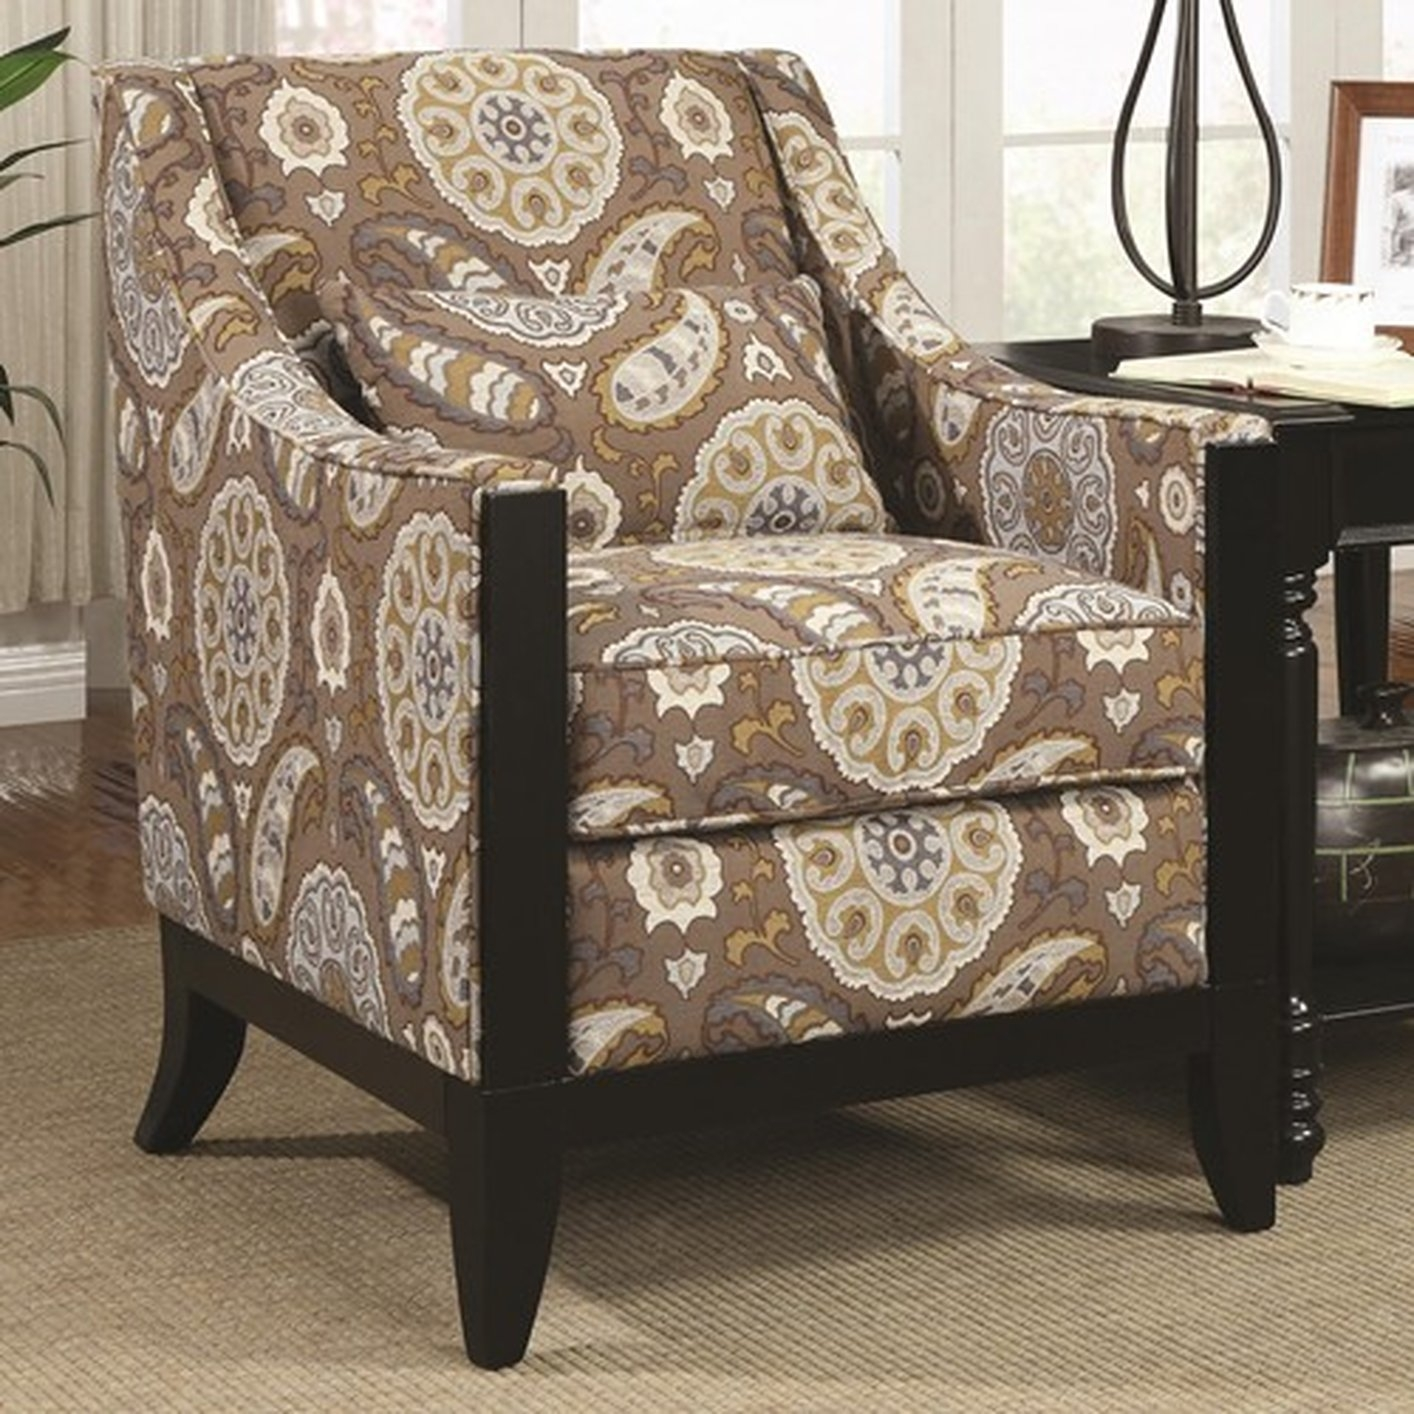 Coaster 902091 Brown Fabric Accent Chair Steal A Sofa Furniture Intended For Accent Sofa Chairs (Image 6 of 15)